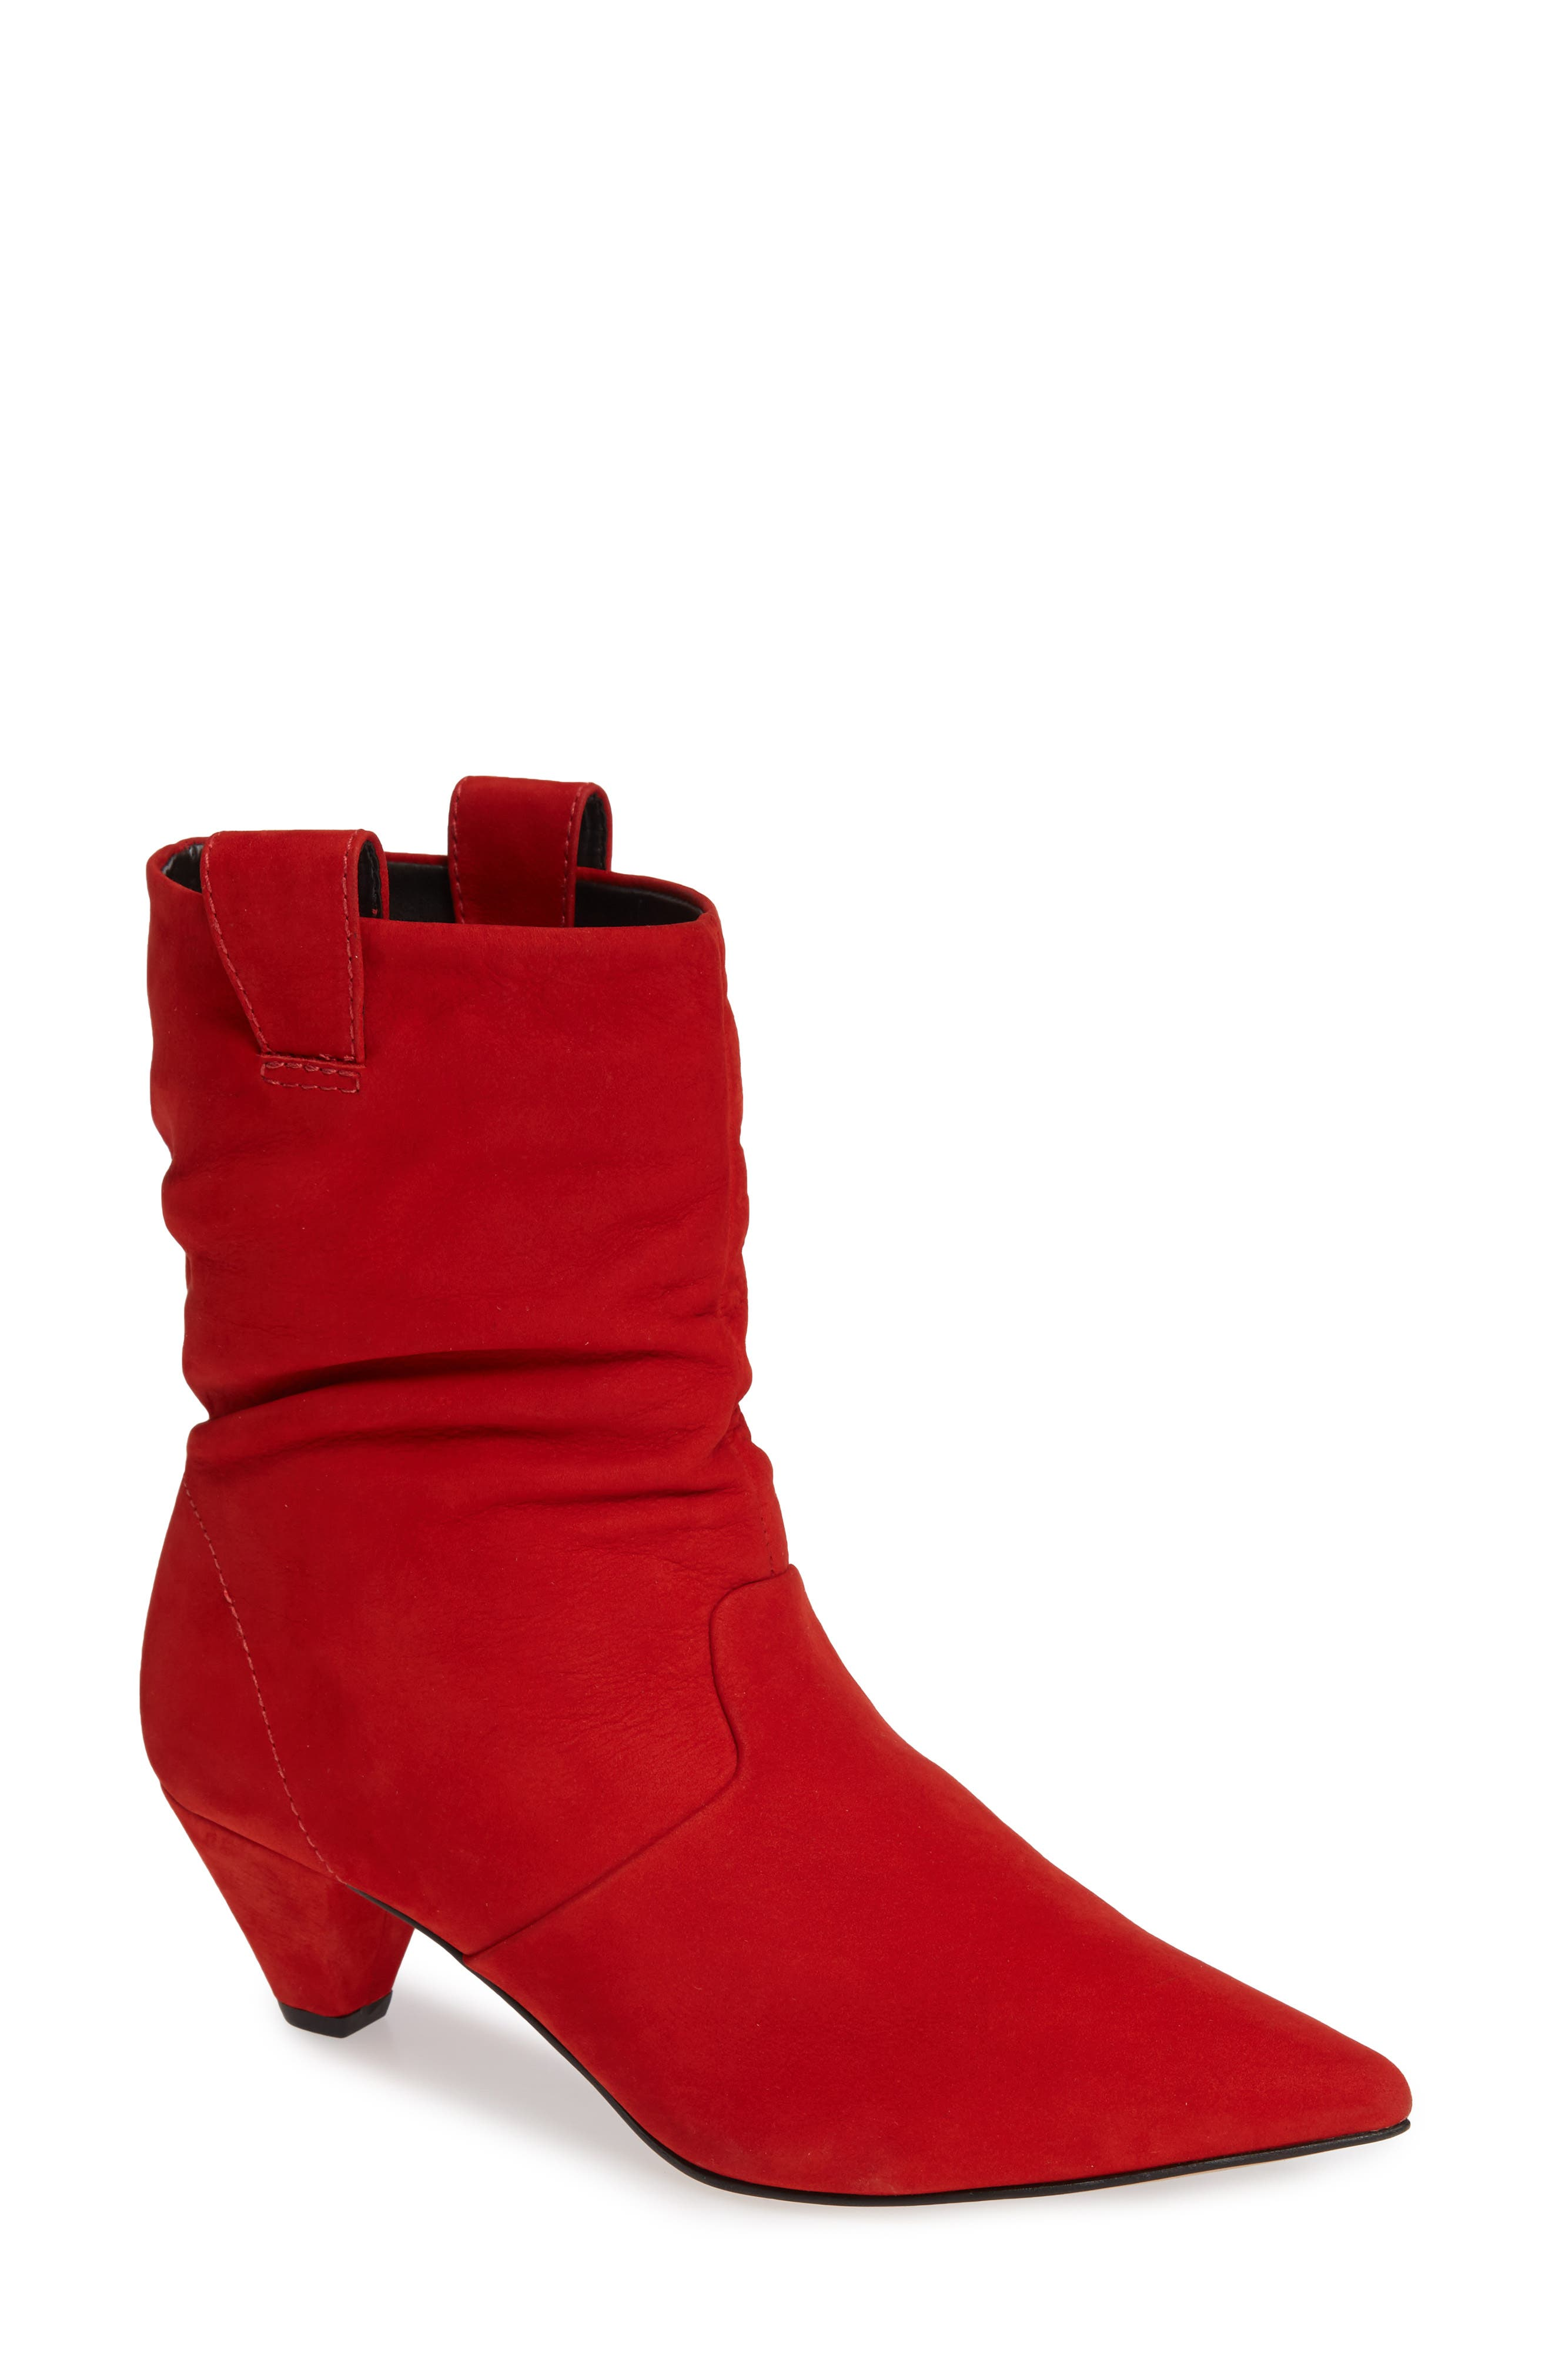 Lust For Life Plum Bootie, Red